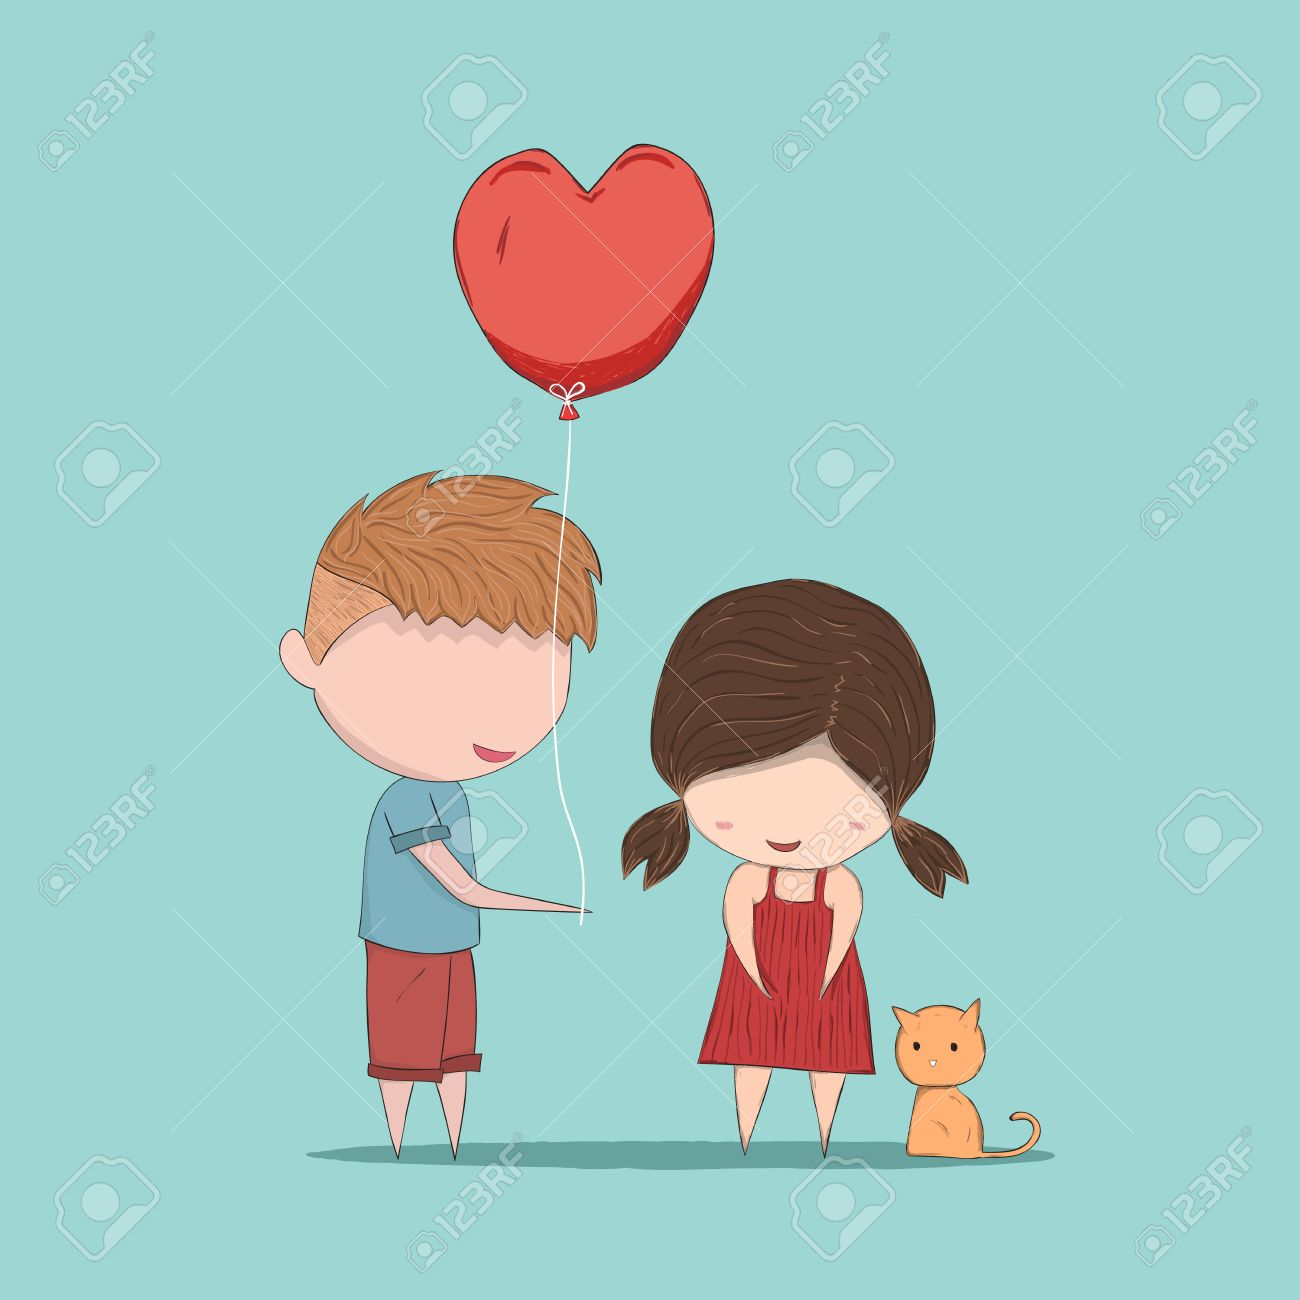 Boy Heart Shaped Balloons Gives Girl And Cat Cute Valentine S